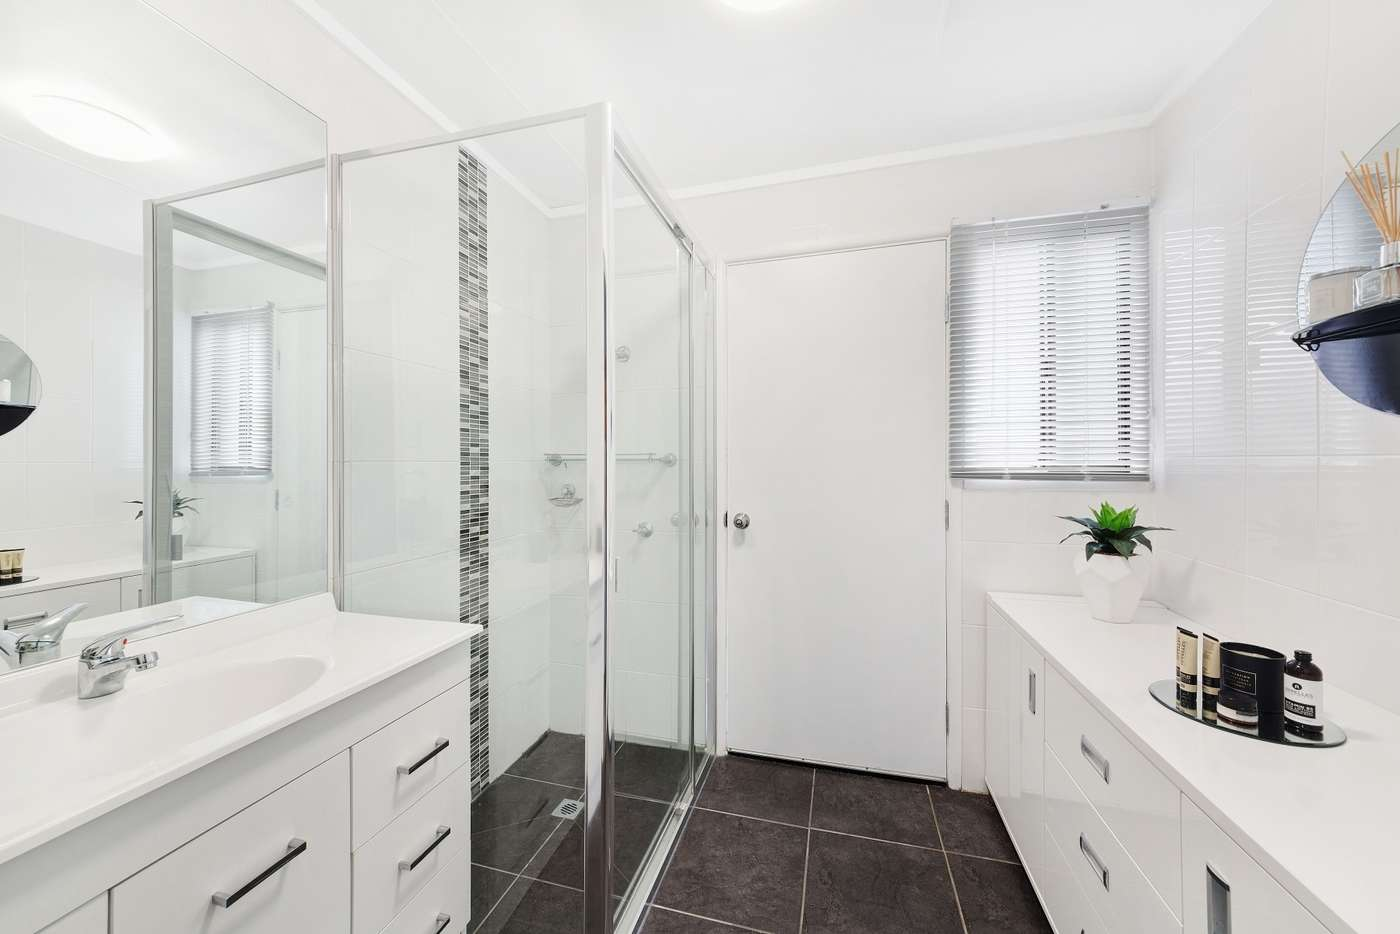 Fifth view of Homely unit listing, 19/437 Wards Hill Rd, Empire Bay NSW 2257